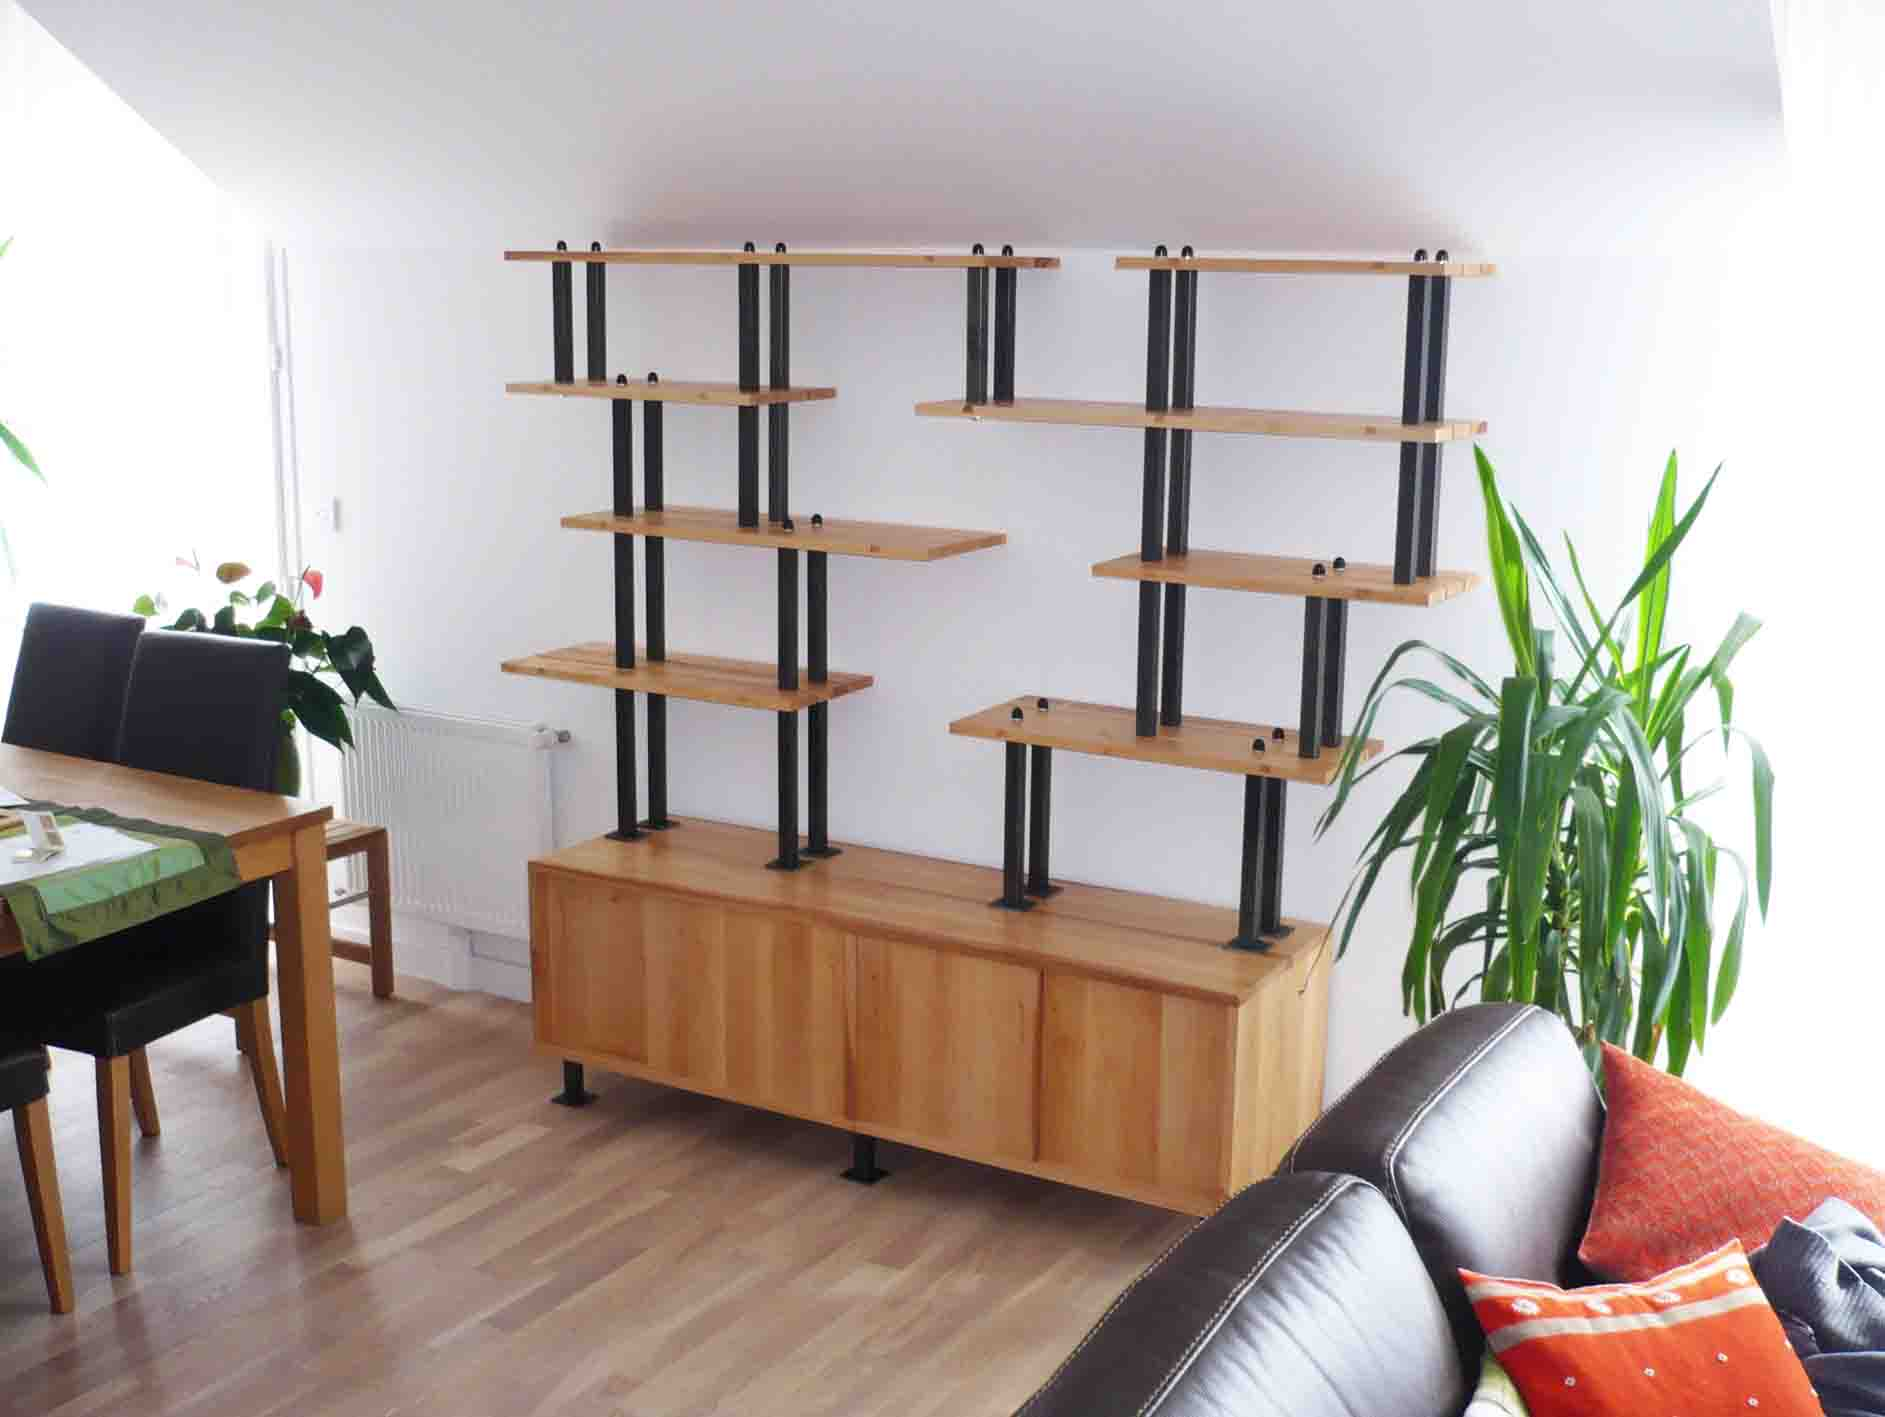 fabriquer biblioth que bois id e int ressante pour la conception de meubles en bois qui inspire. Black Bedroom Furniture Sets. Home Design Ideas